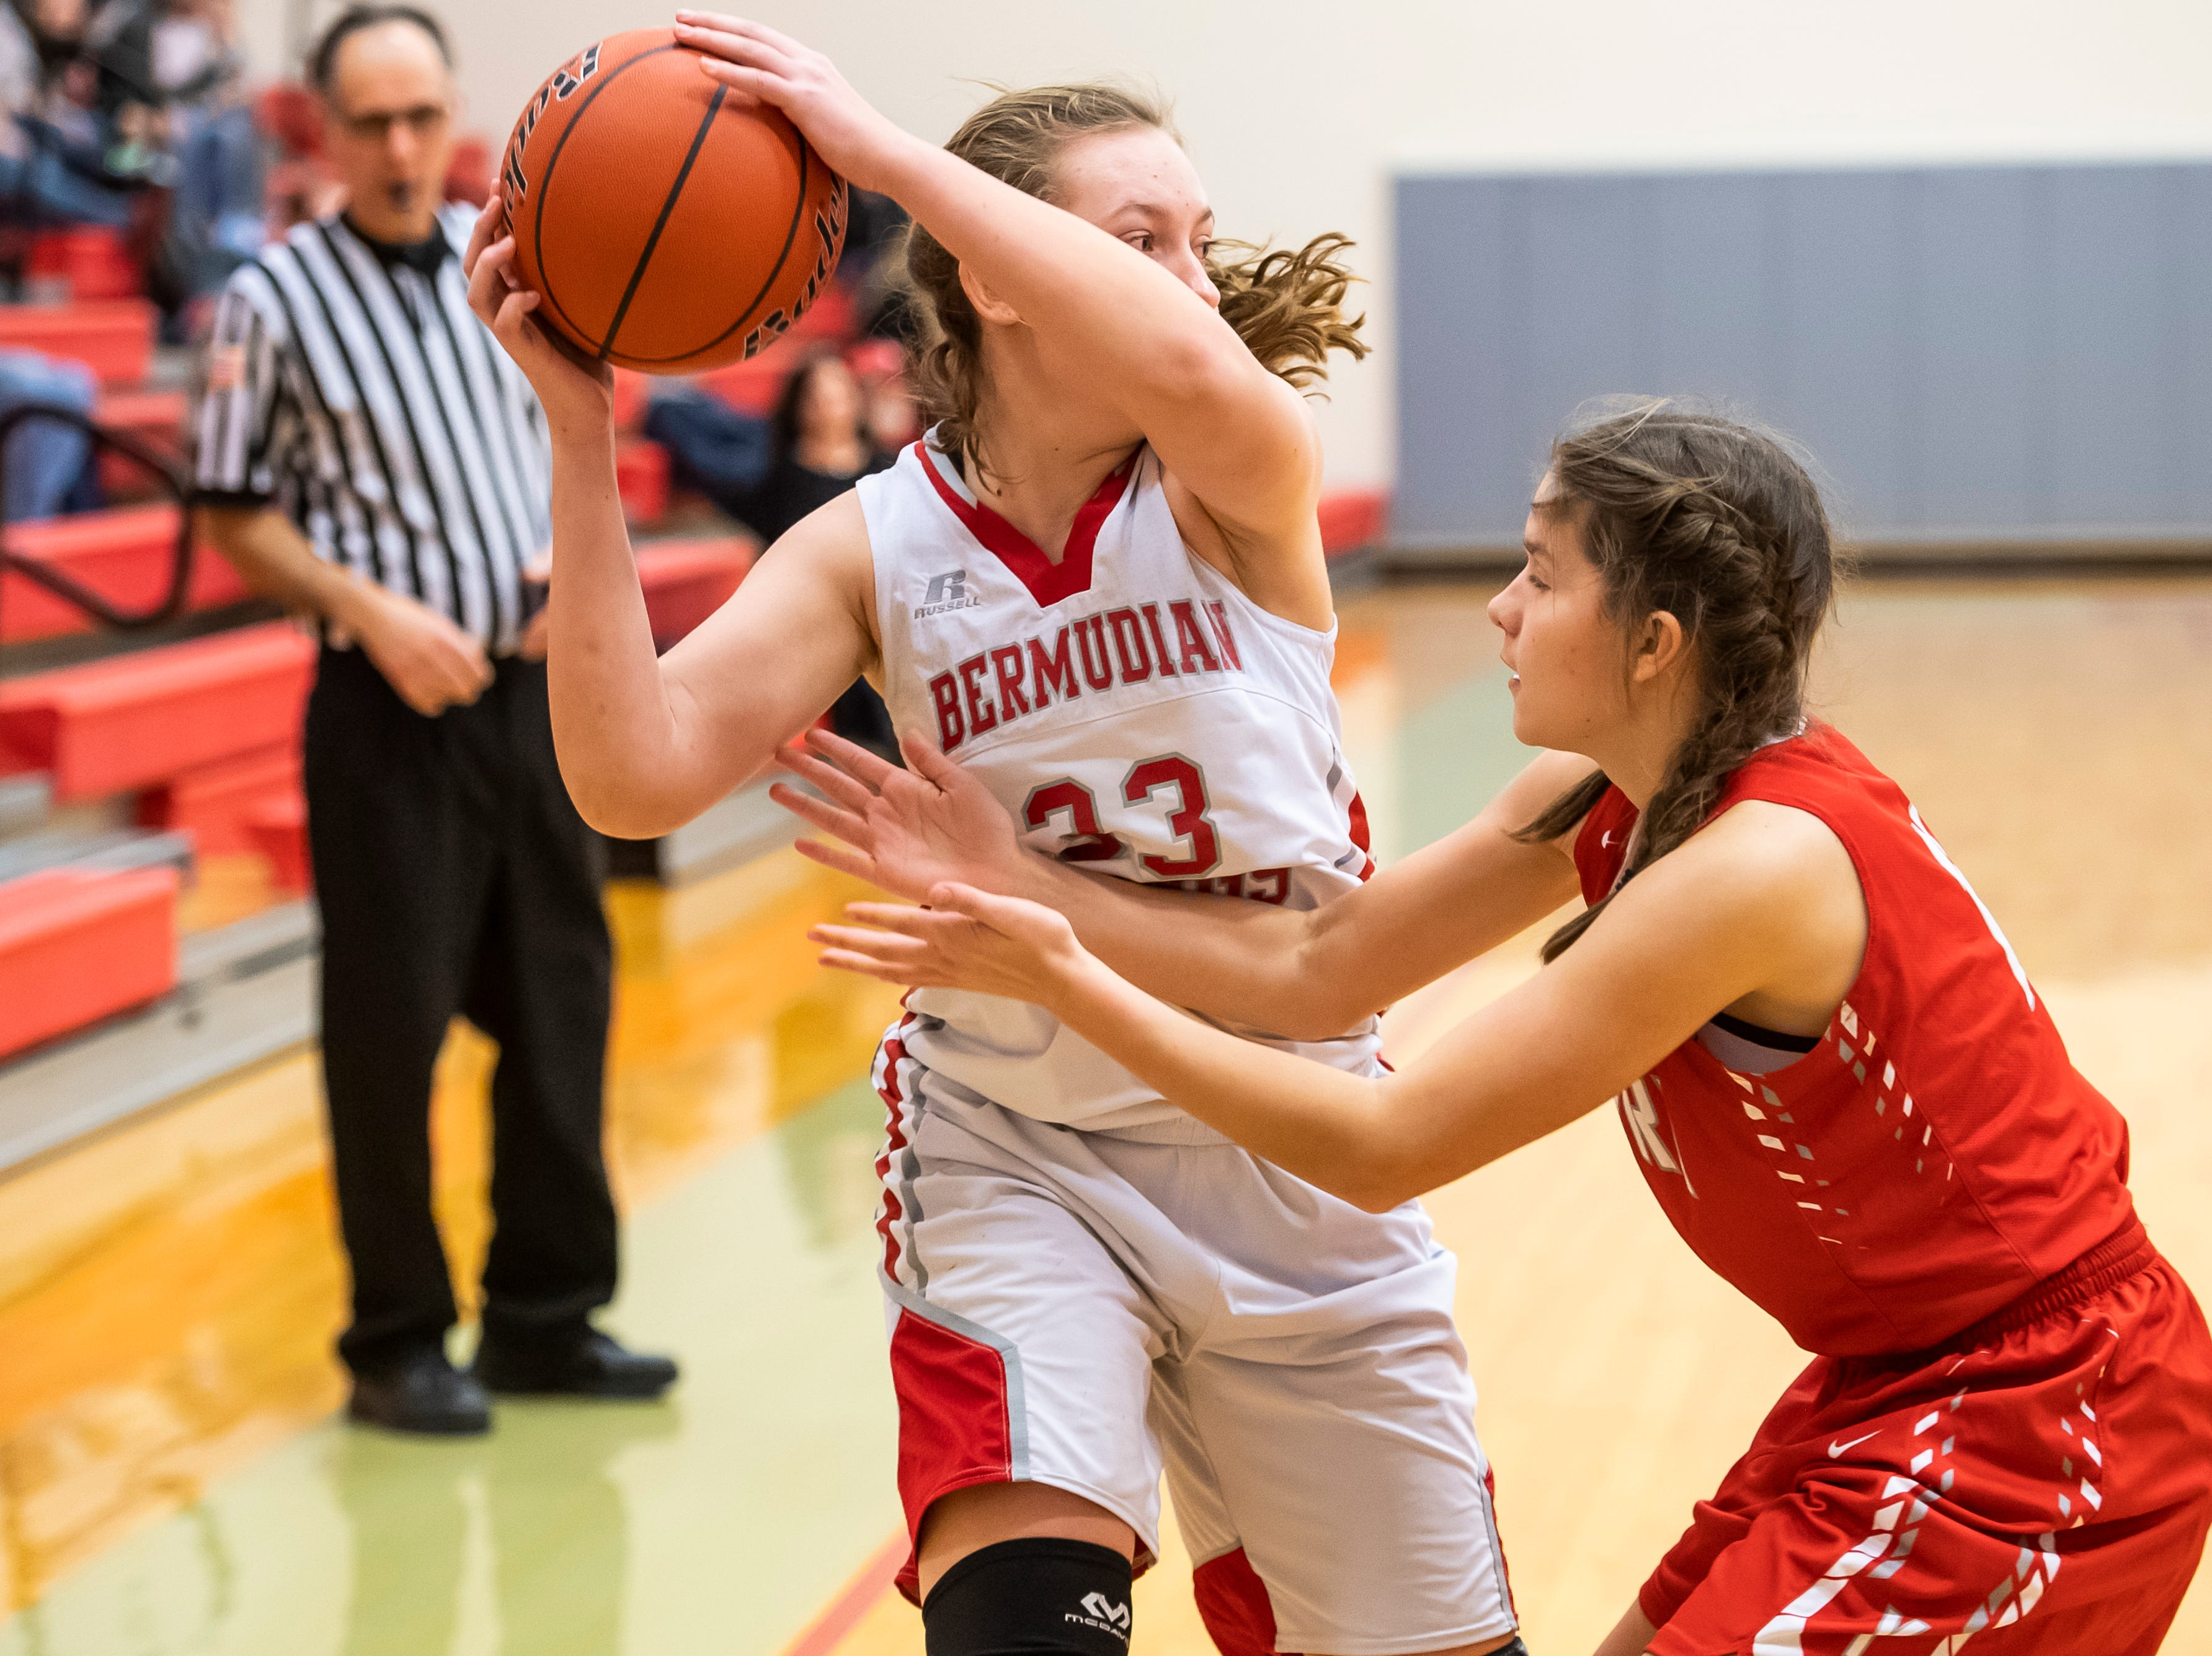 Bermudian Springs' Briella Riley holds the ball away from York Country Day School's Emily Haglin during play at Bermudian Springs High School on Monday, January 14, 2019. The Eagles won 59-20.